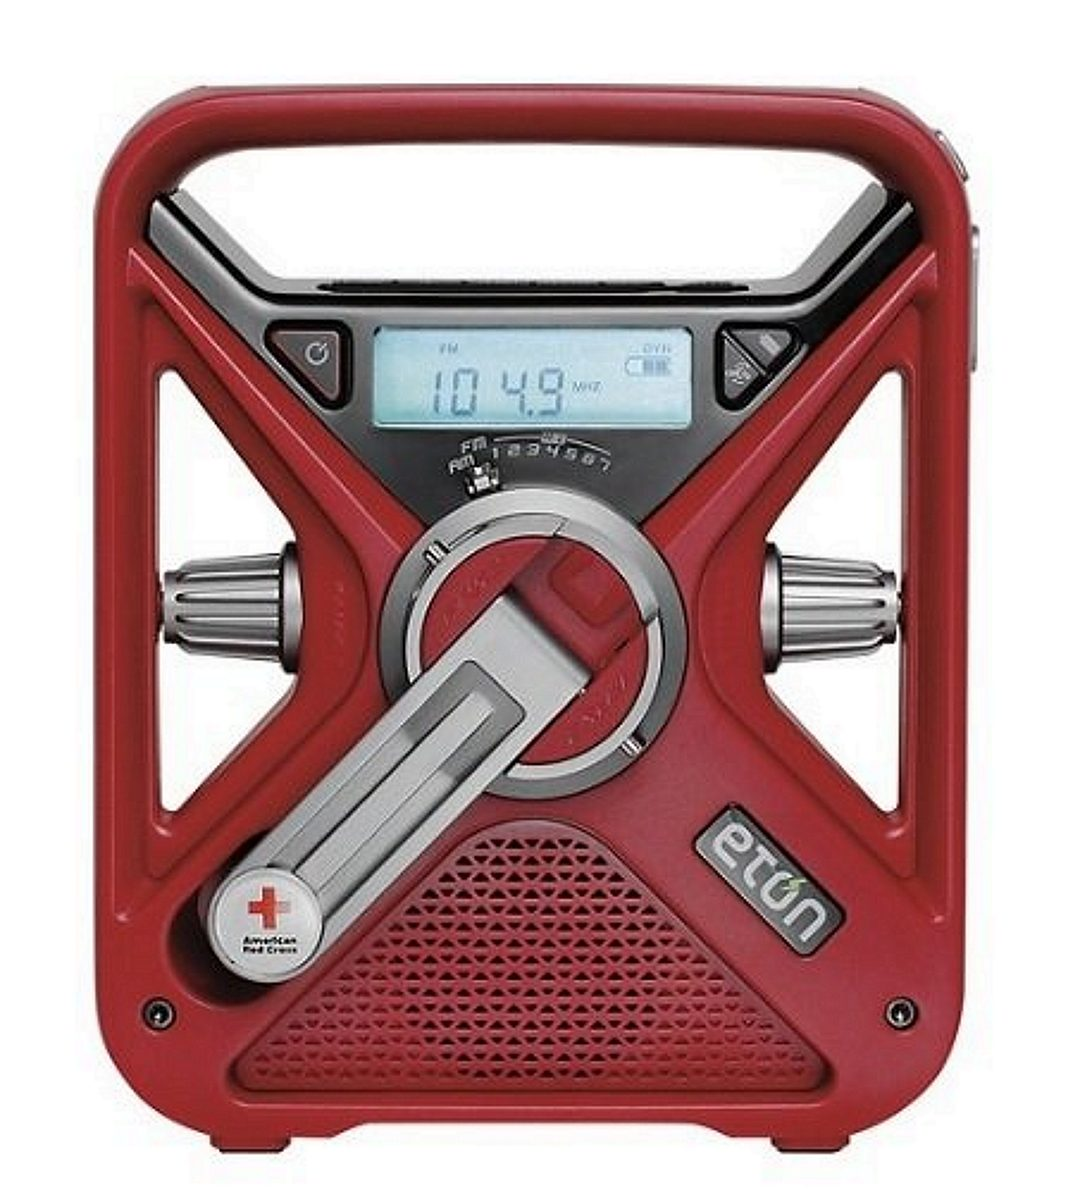 The American Red Cross FRX3 Emergency Radio, Hand Crank